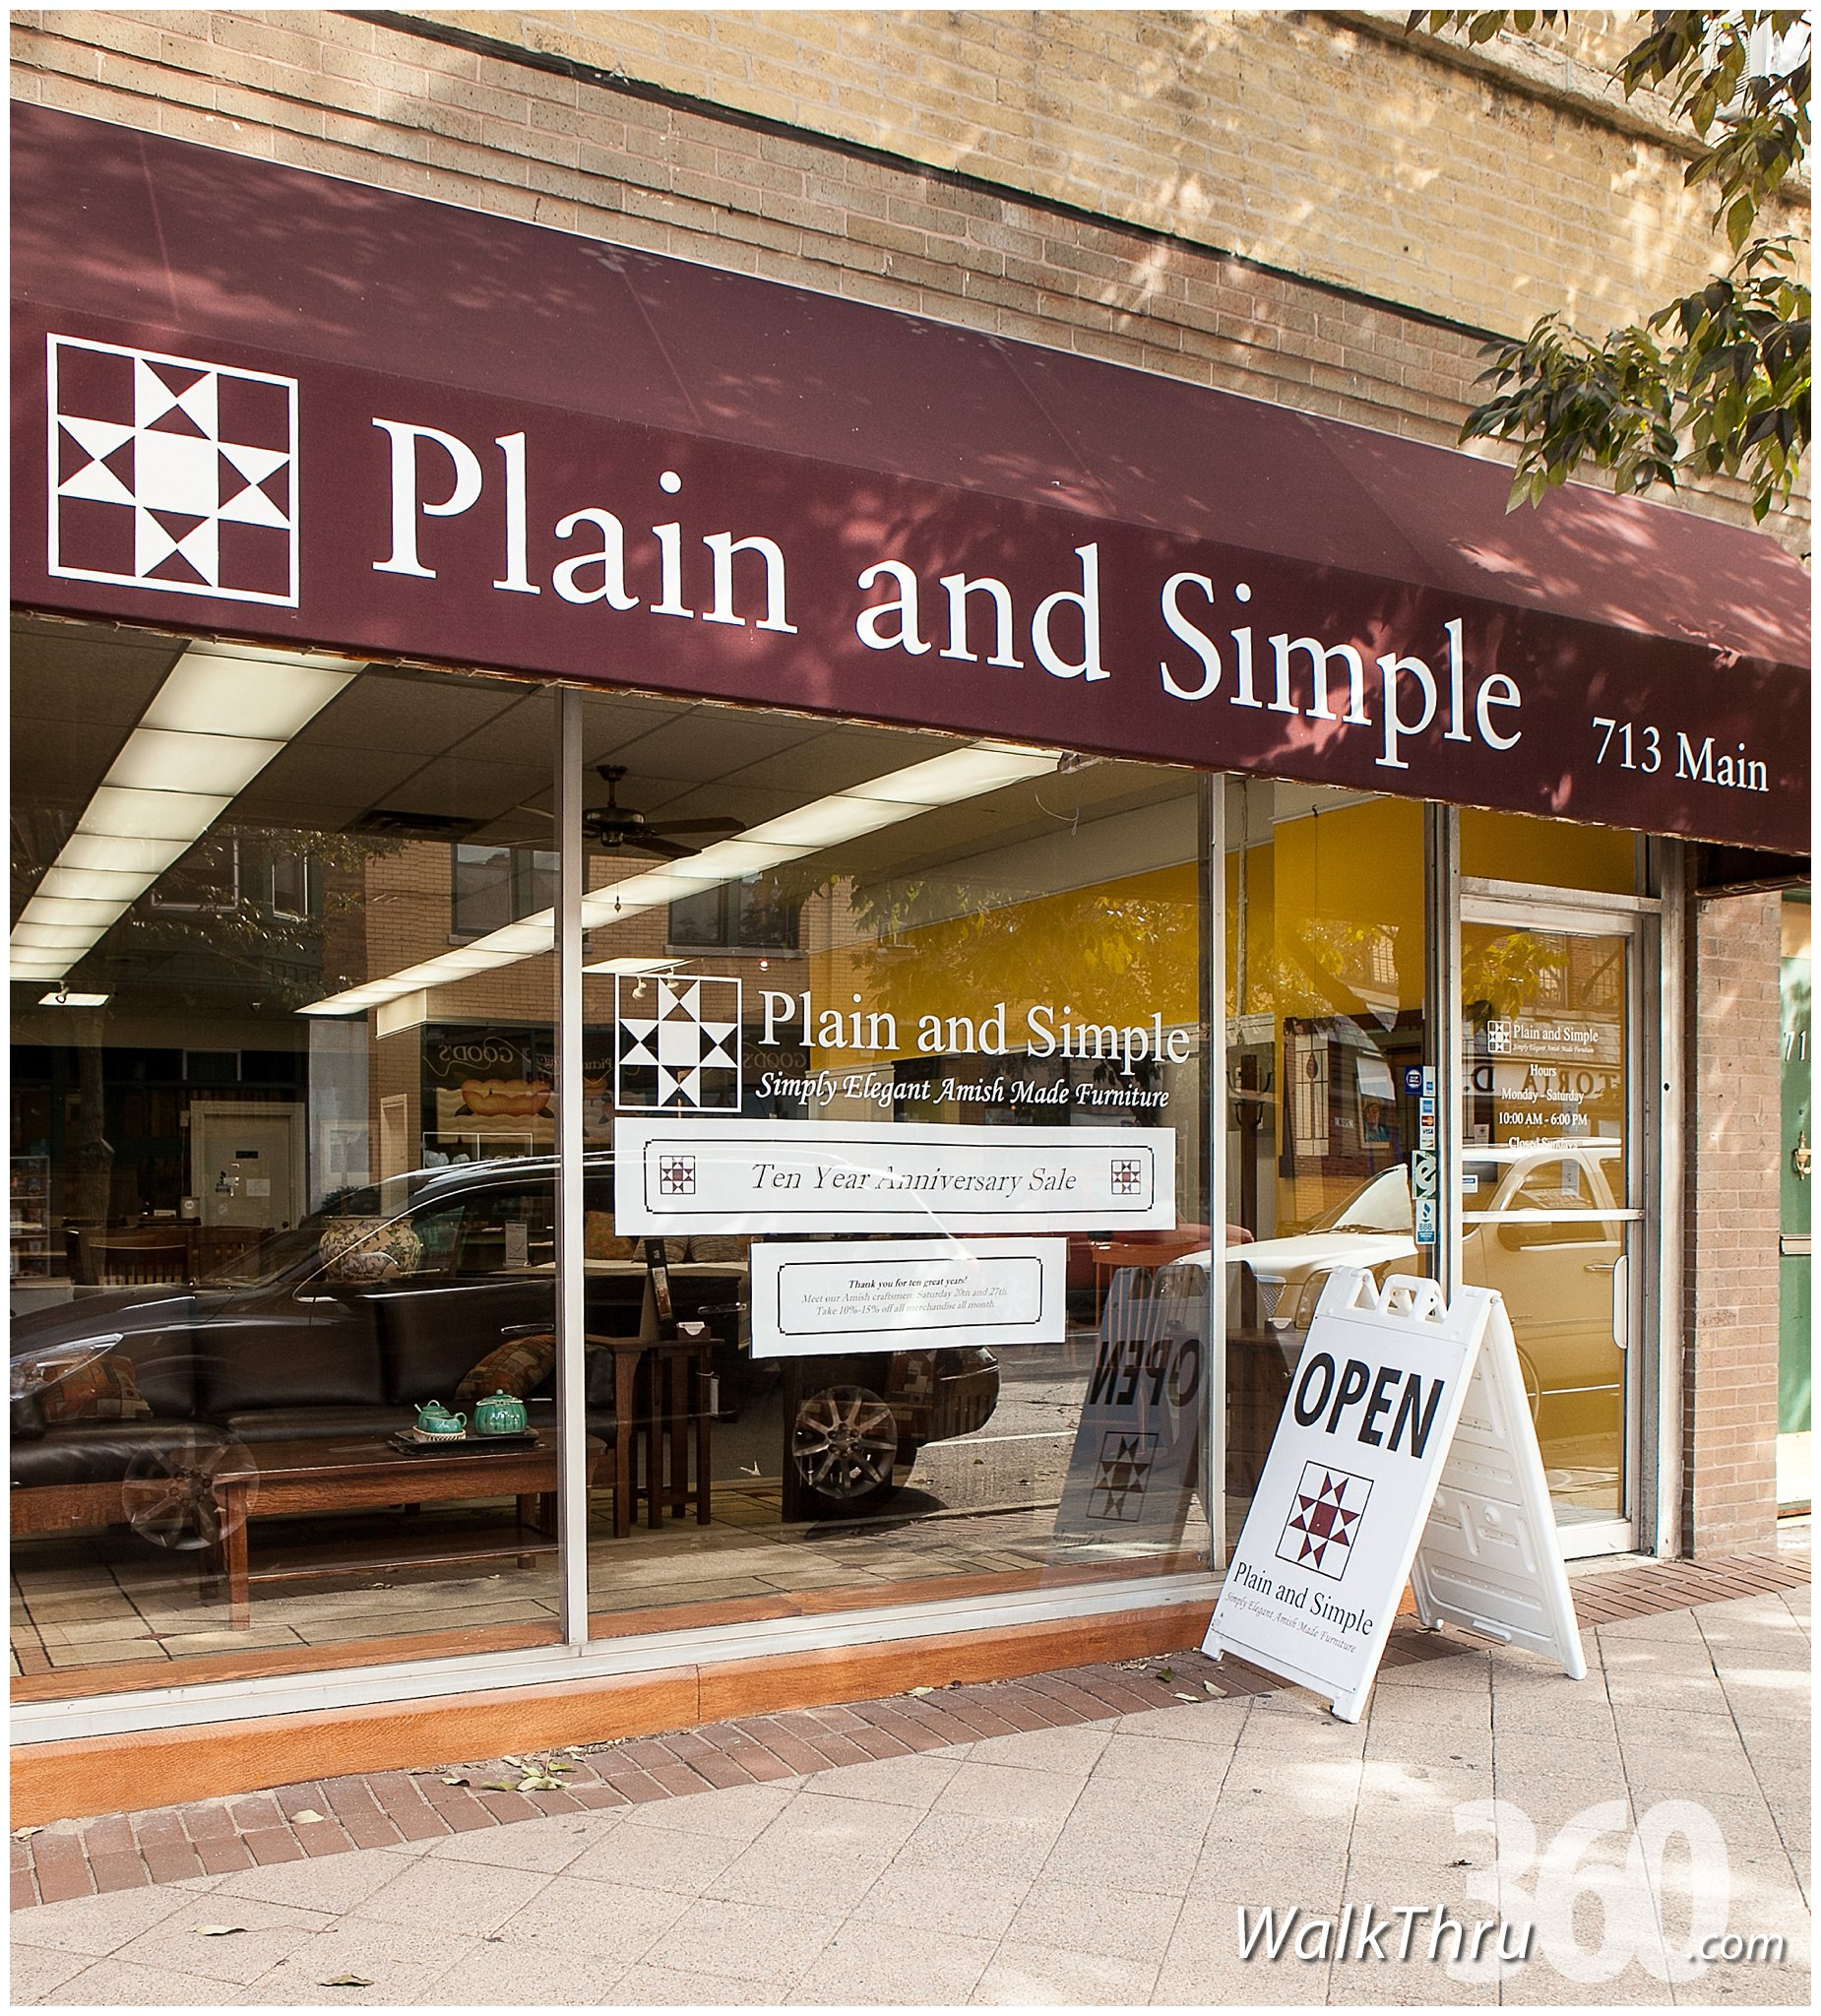 Plain And Simple Furniture Evanston Chicago Street View Trusted Photographer Walkthru360